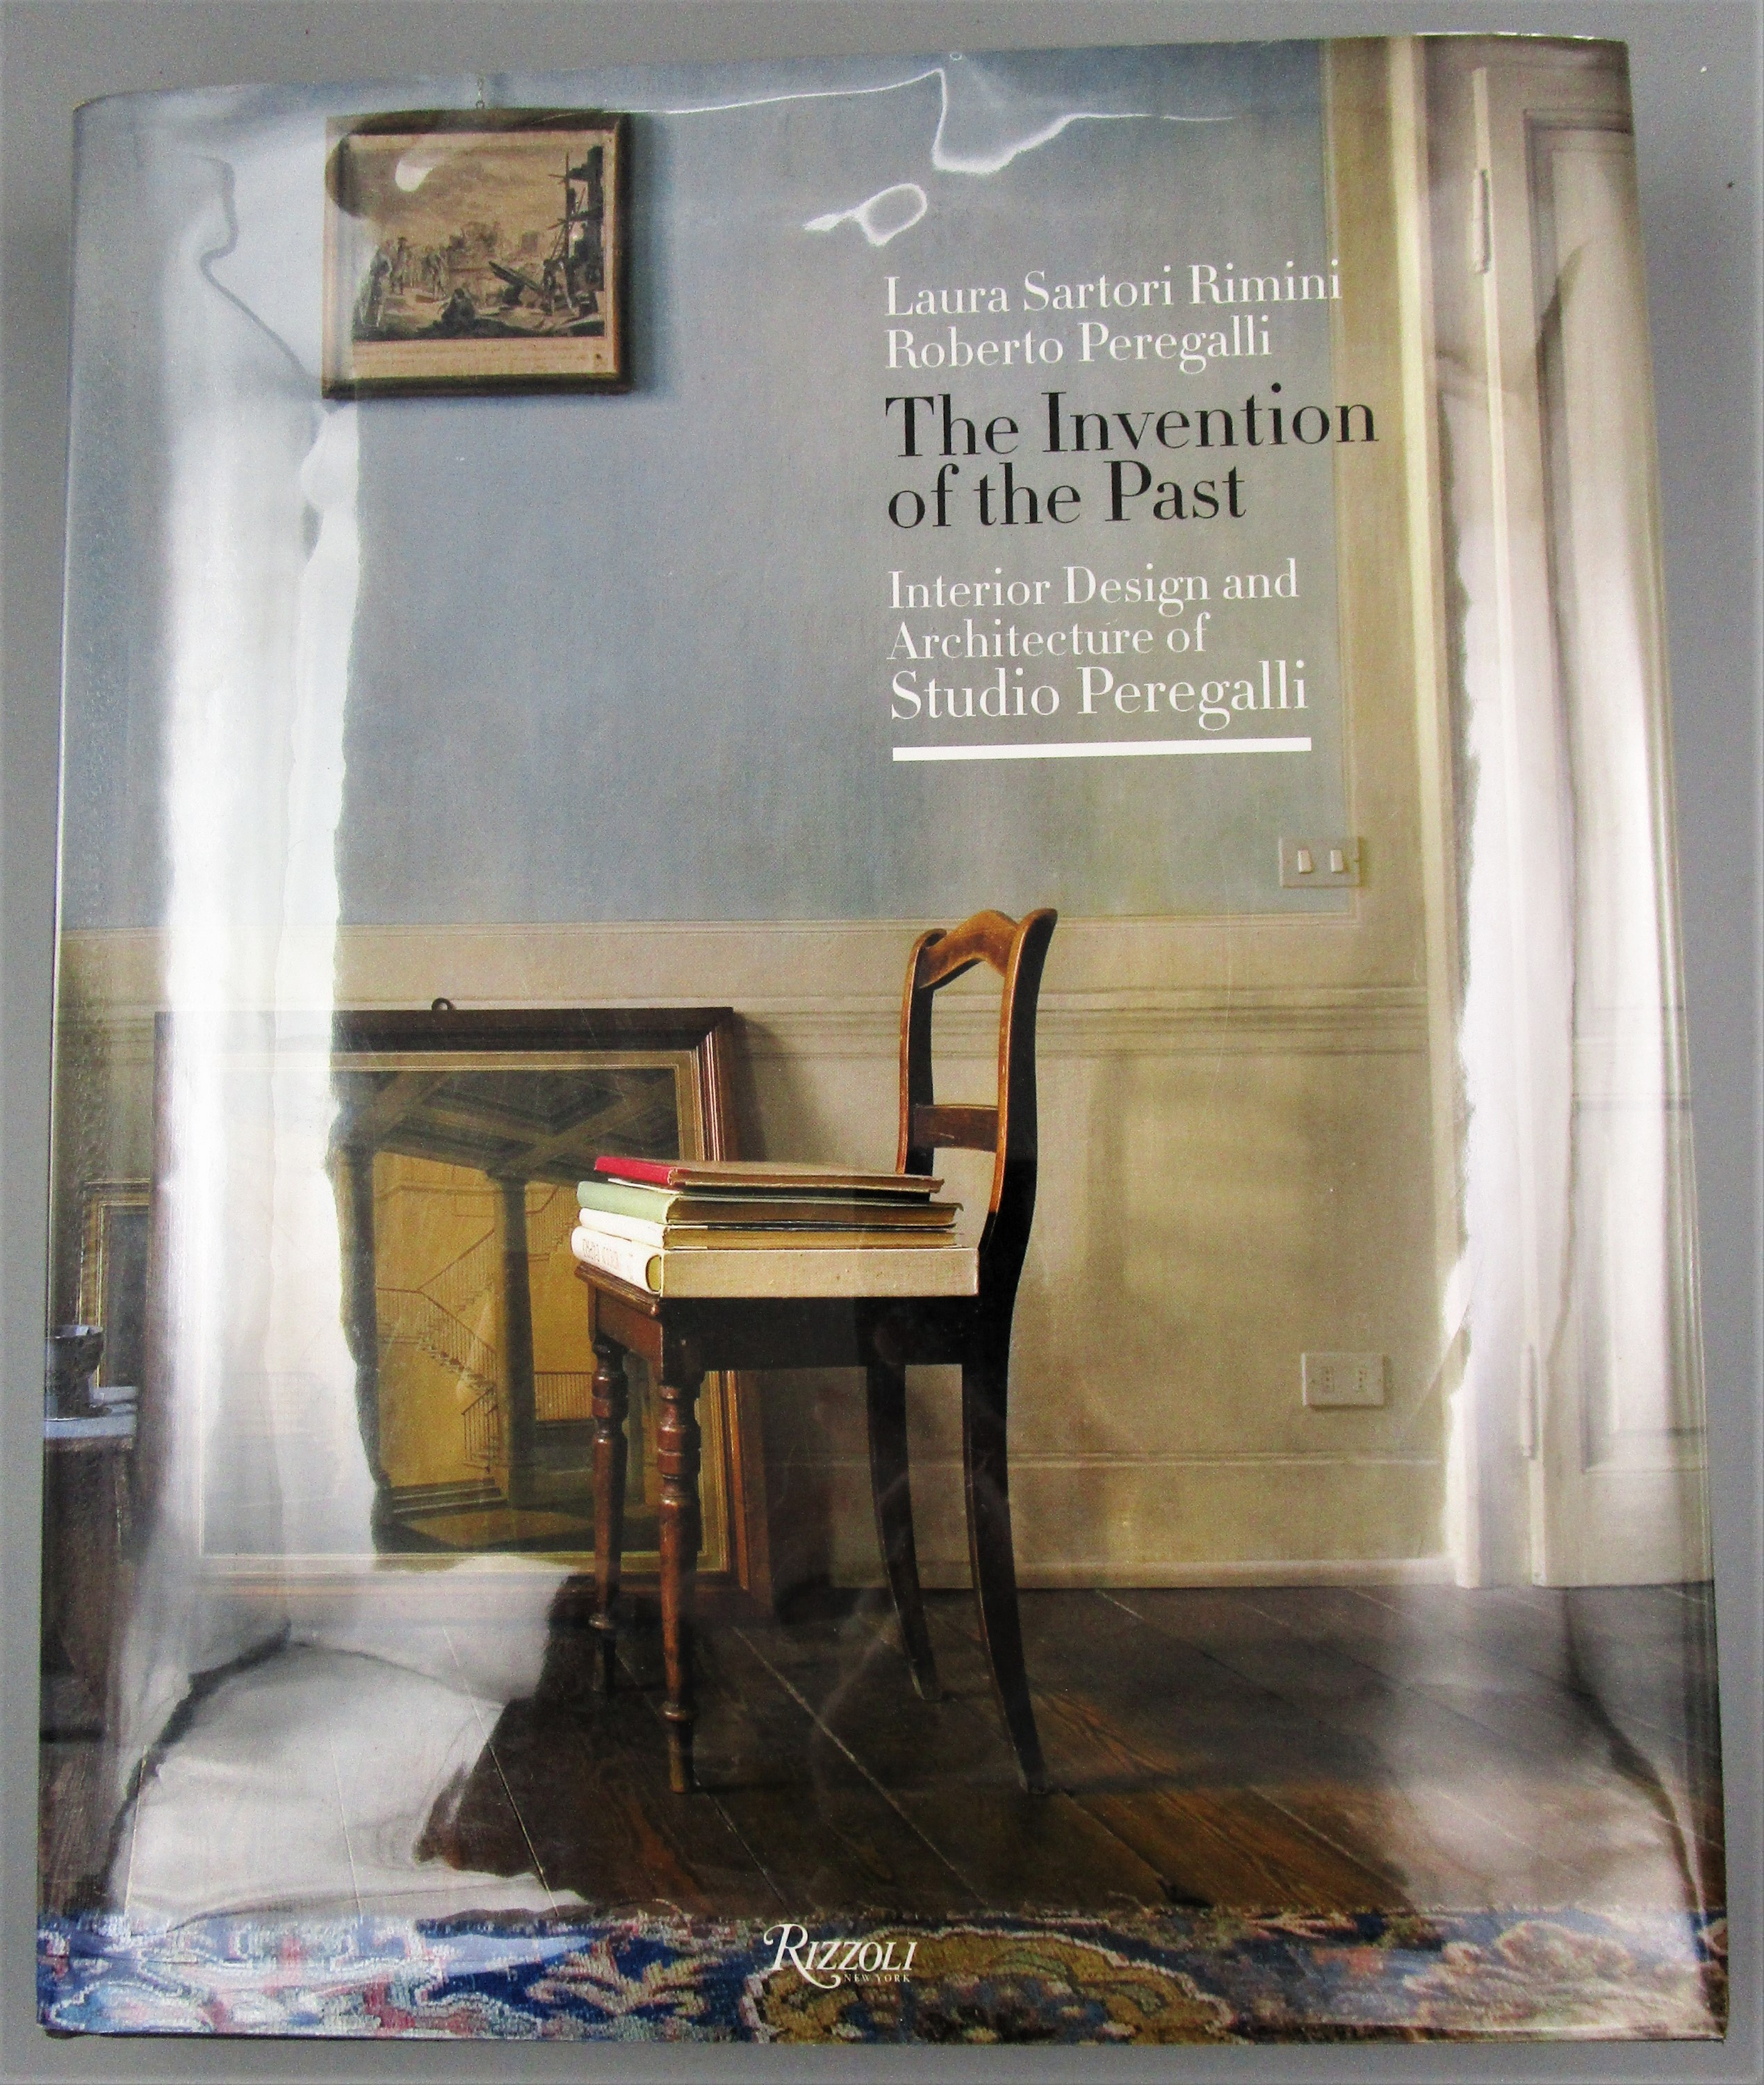 THE INVENTION OF THE PAST, by Laura Sartori Rimini & Roberto Peregalli  - 2011